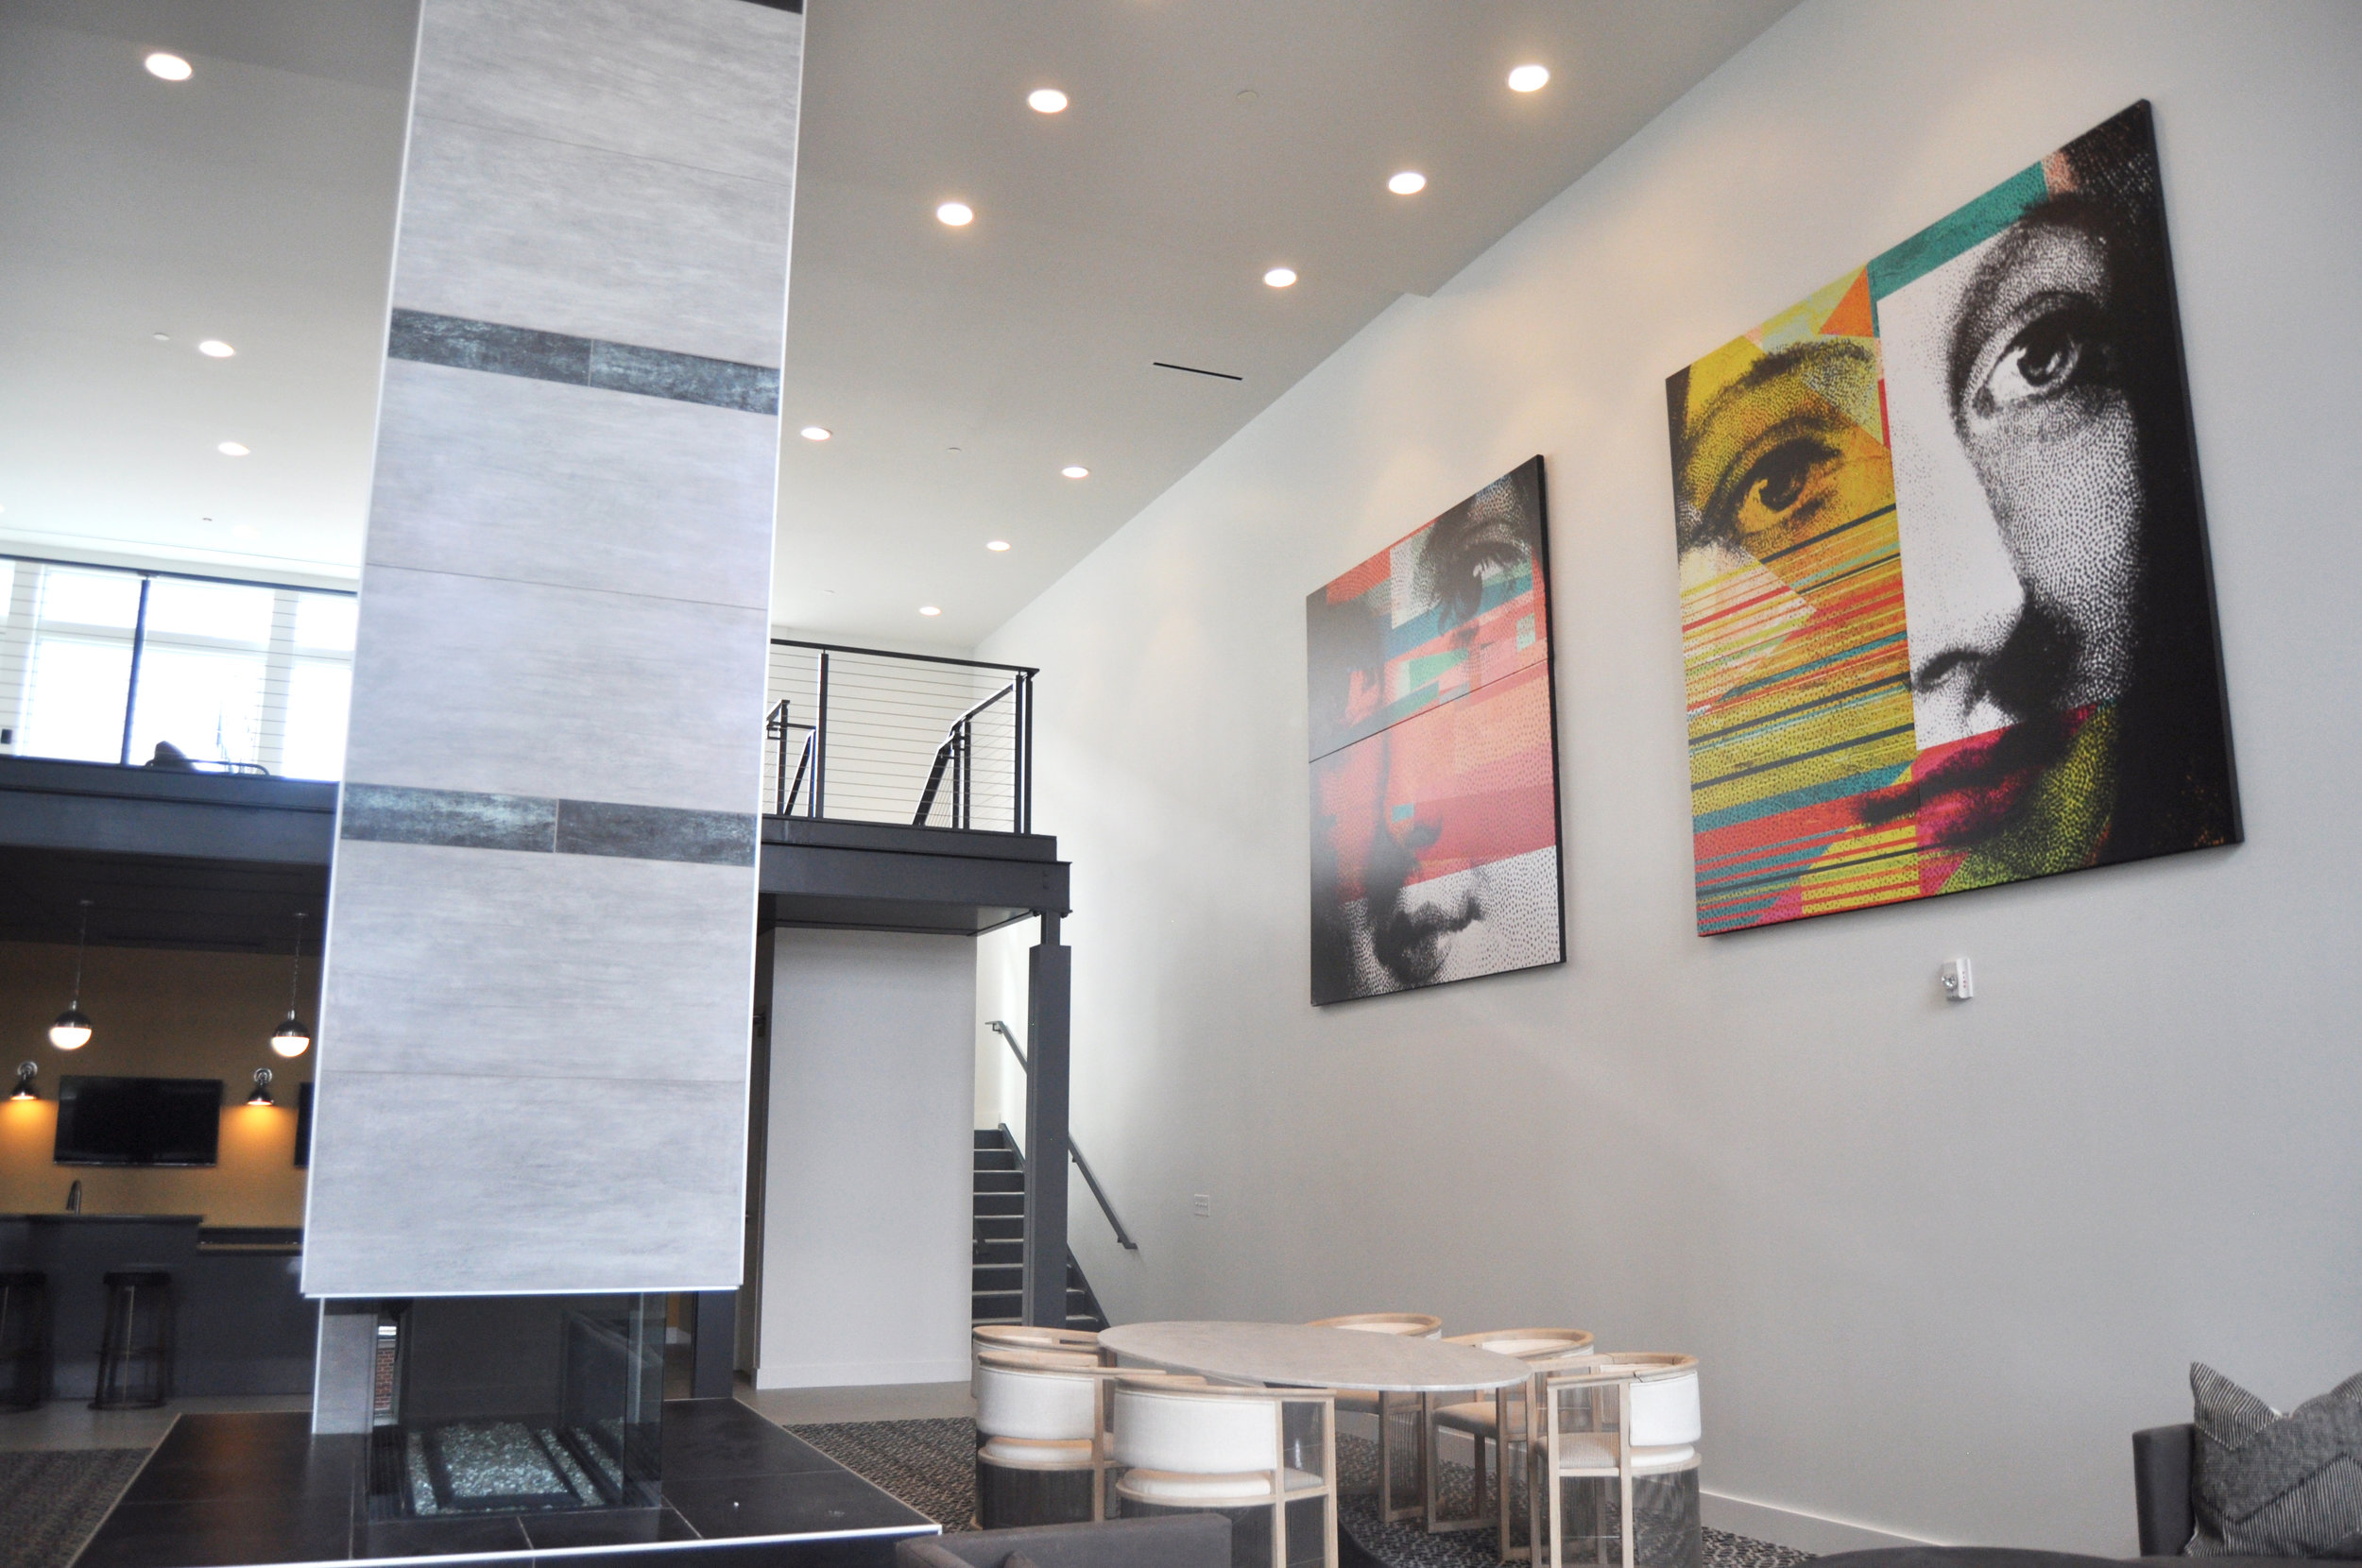 Two huge 8x8 foot canvases adorn a tall wall in the Community Lounge.